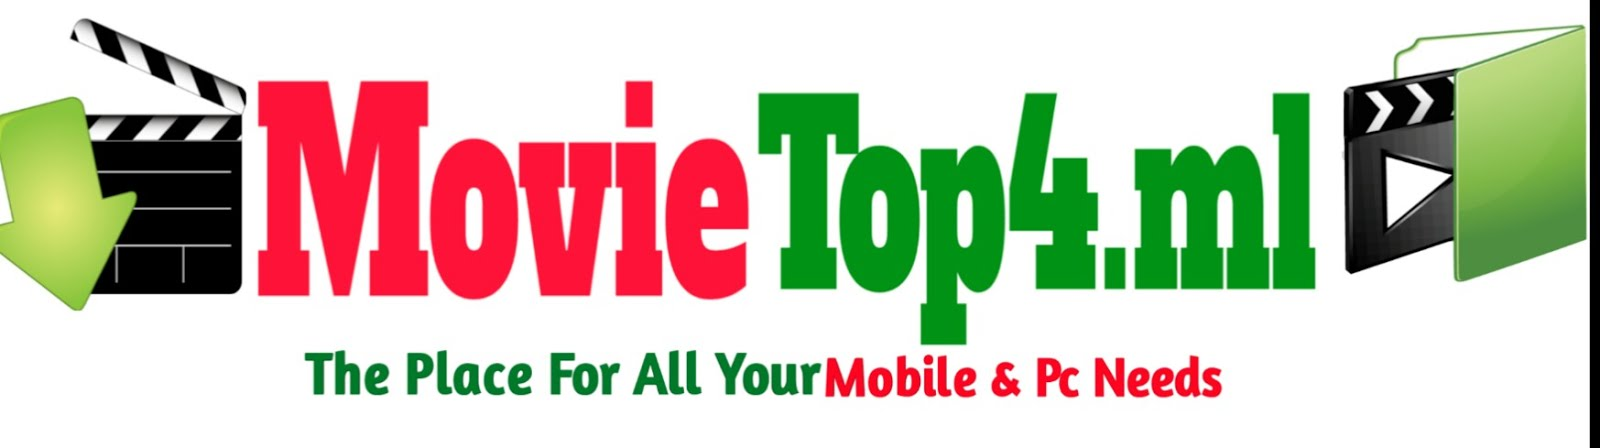 Movietop4.ml || Bangali English Hindi Punjab And All Category Movies Download In Movietop4 Site